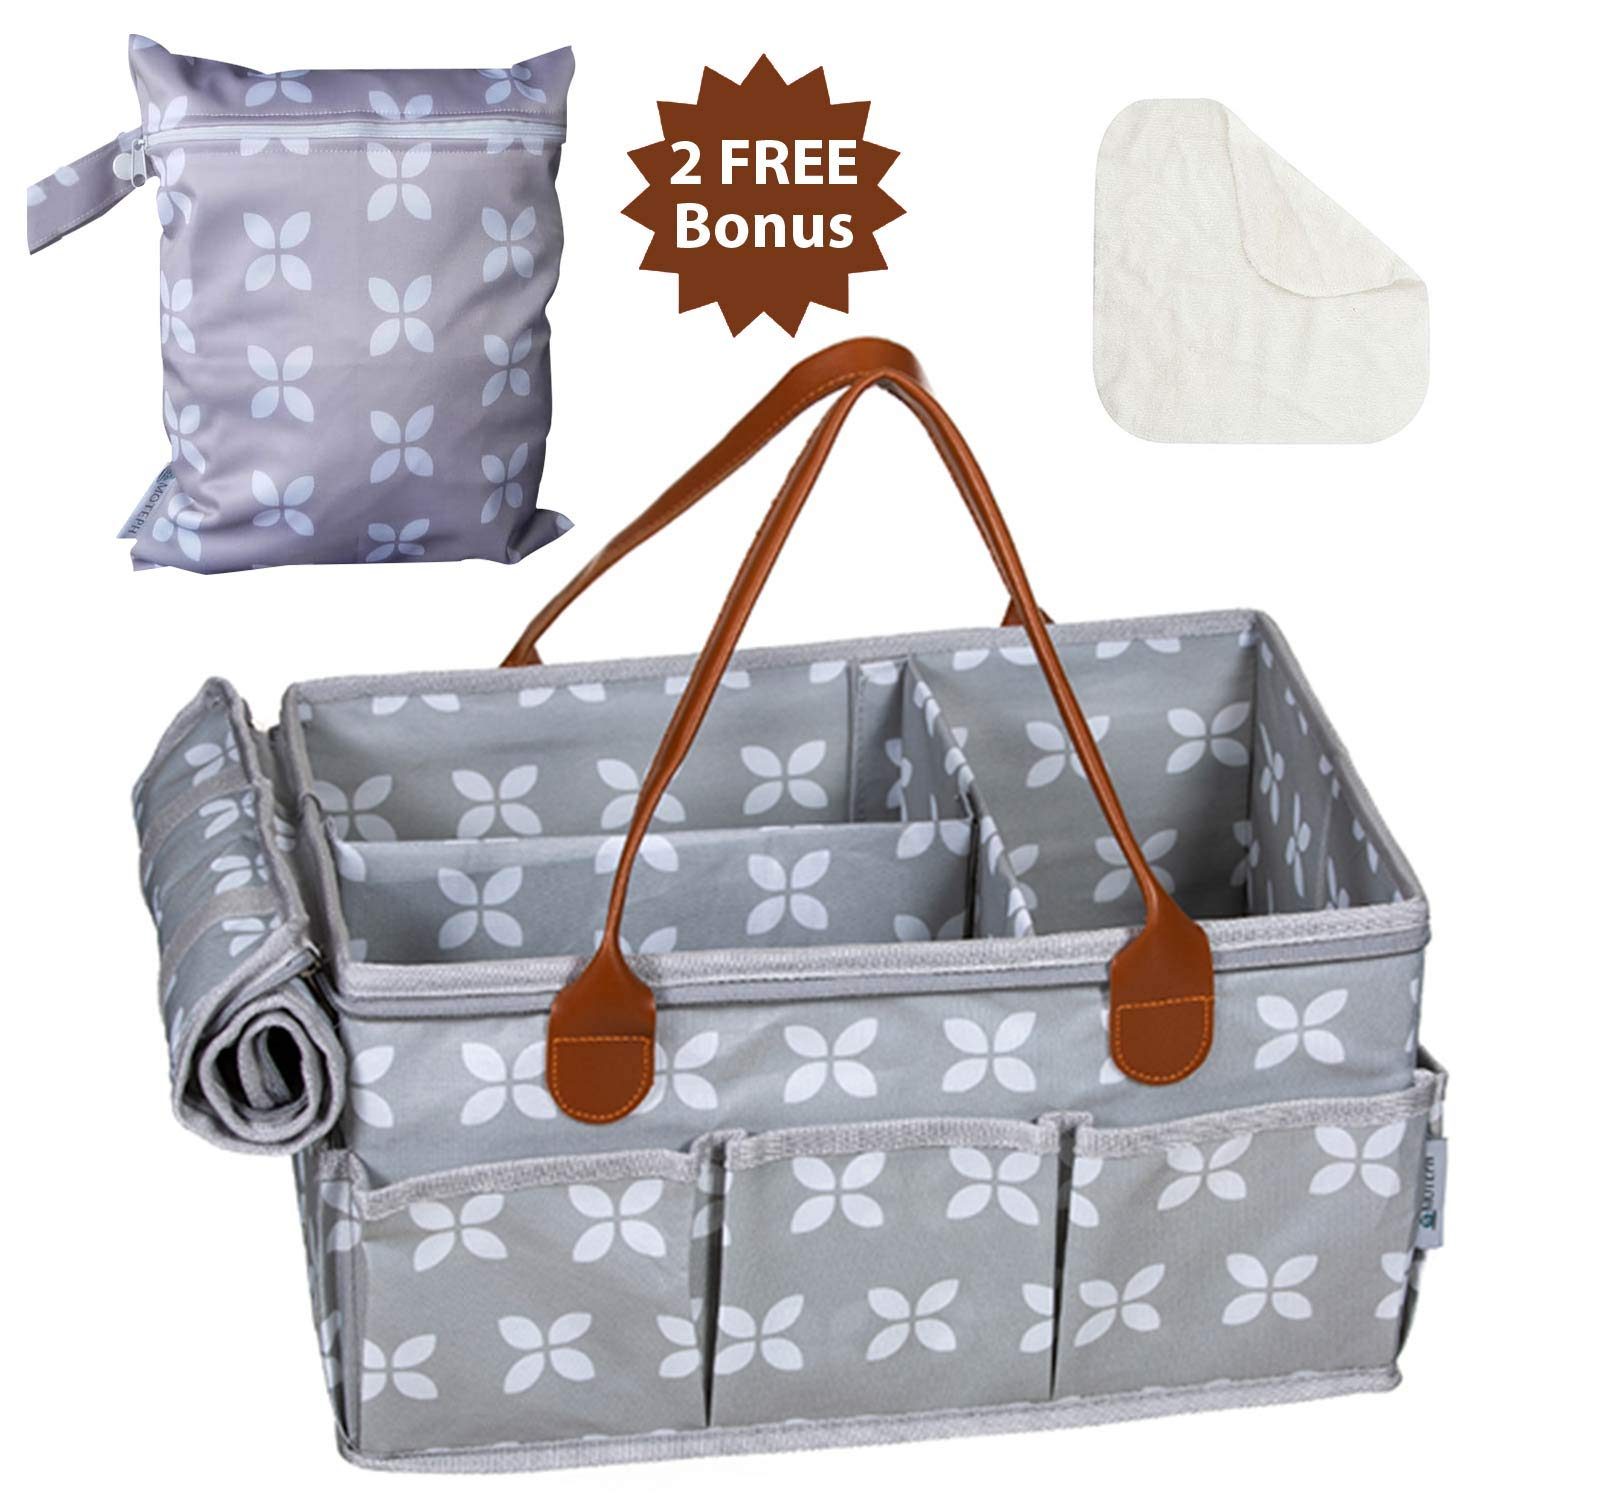 Moteph Extra Large Diaper Caddy Organizer with Zip-Top Cover with 2 Extra Items - Waterproof Wet/Dry Bag - Velour Baby Wipe Cloth - Perfect for Baby Shower by Moteph